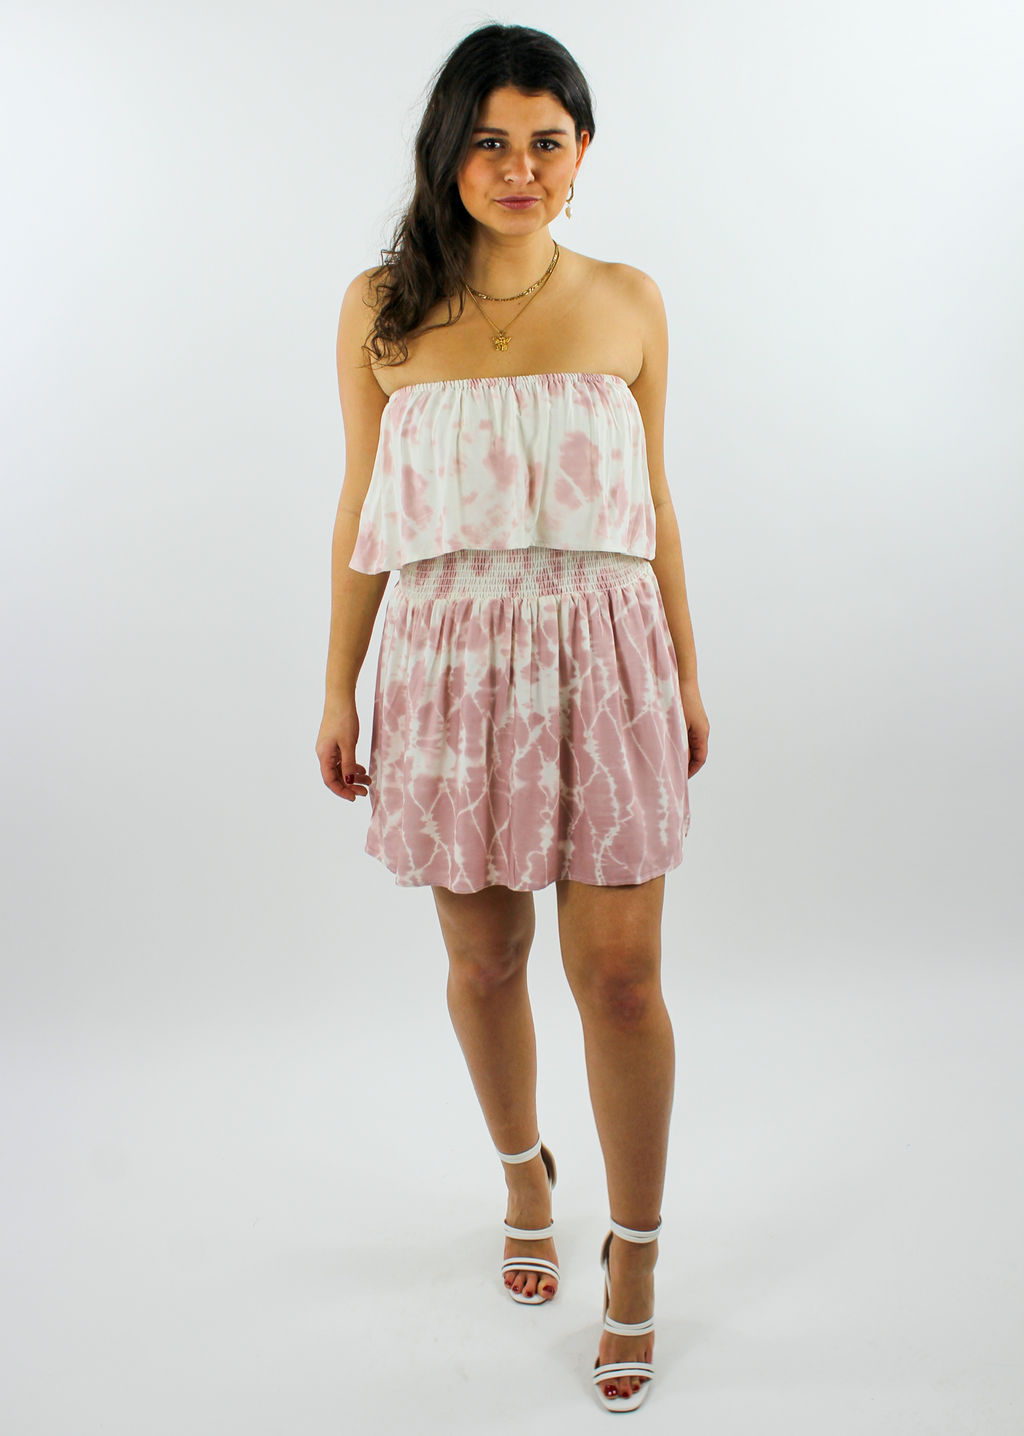 Sunset Lover Dress ★ Mauve - Rock N Rags